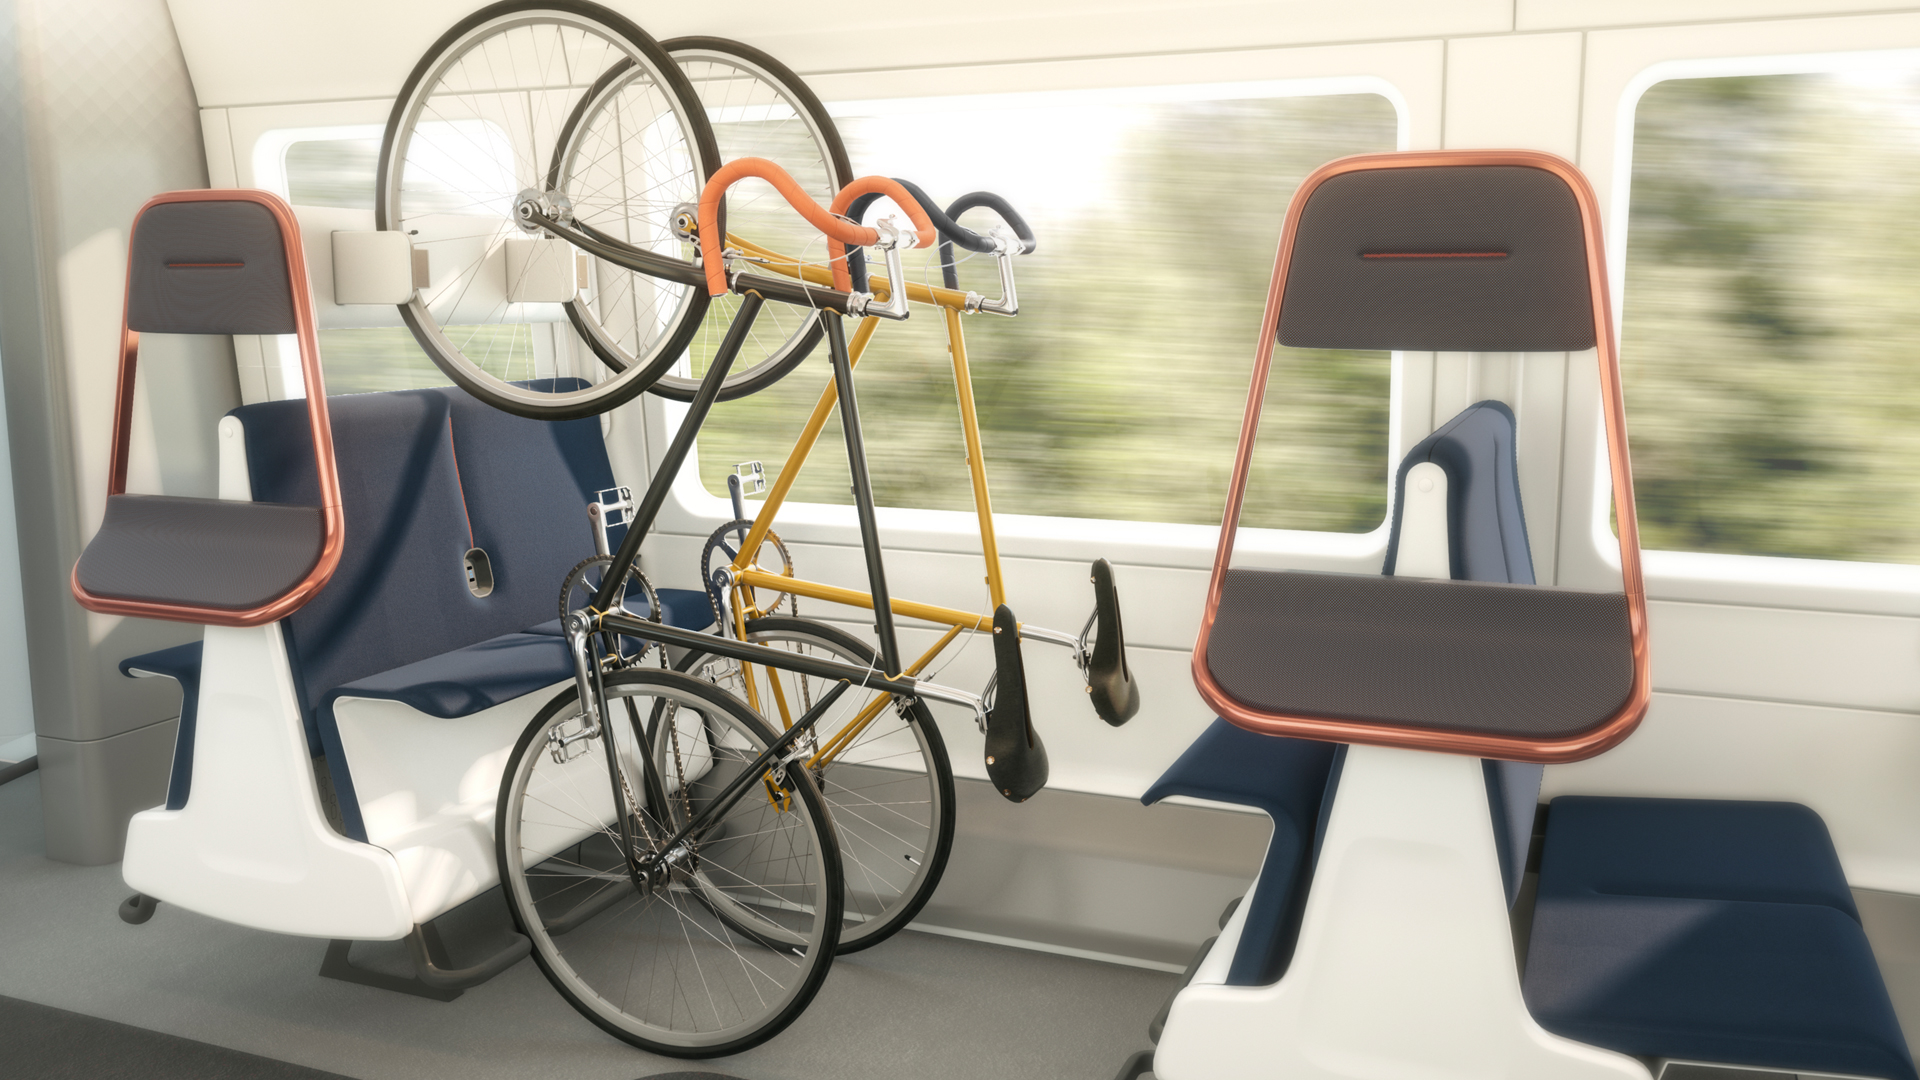 Could a train seat that stores bikes be a solution to post-pandemic travel?